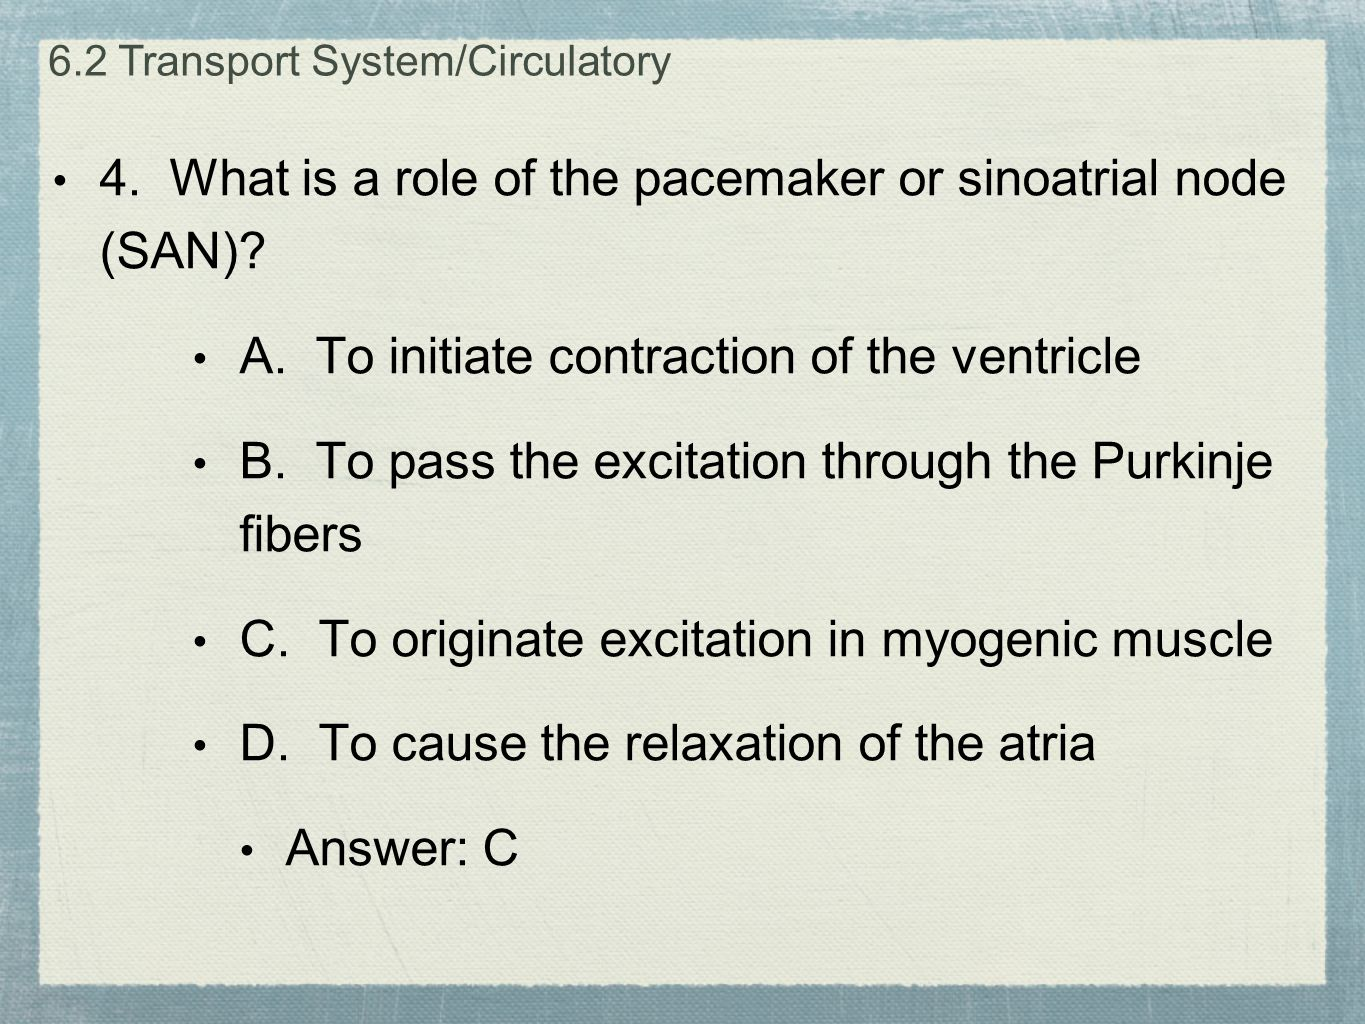 4. What is a role of the pacemaker or sinoatrial node (SAN)